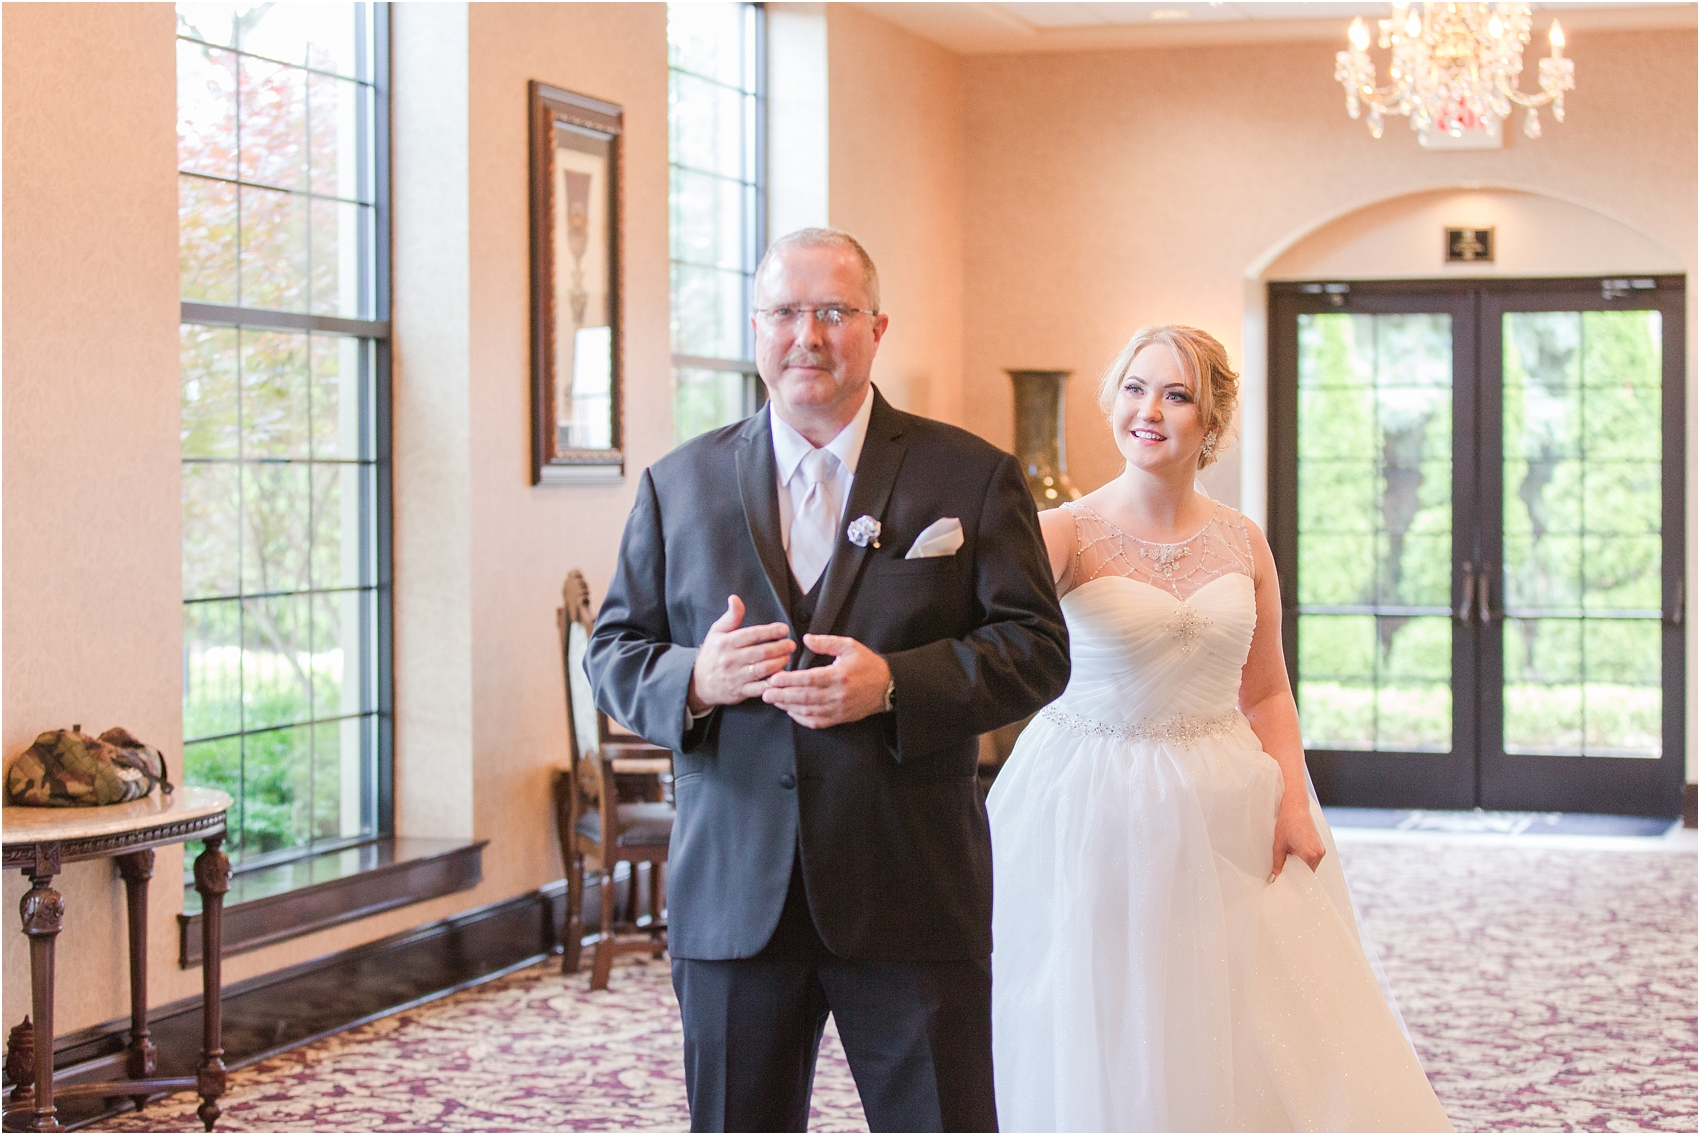 father-and-bride-share-emotional-first-look-on-wedding-day-photos-in-detroit-michigan-by-courtney-carolyn-photography_0002.jpg